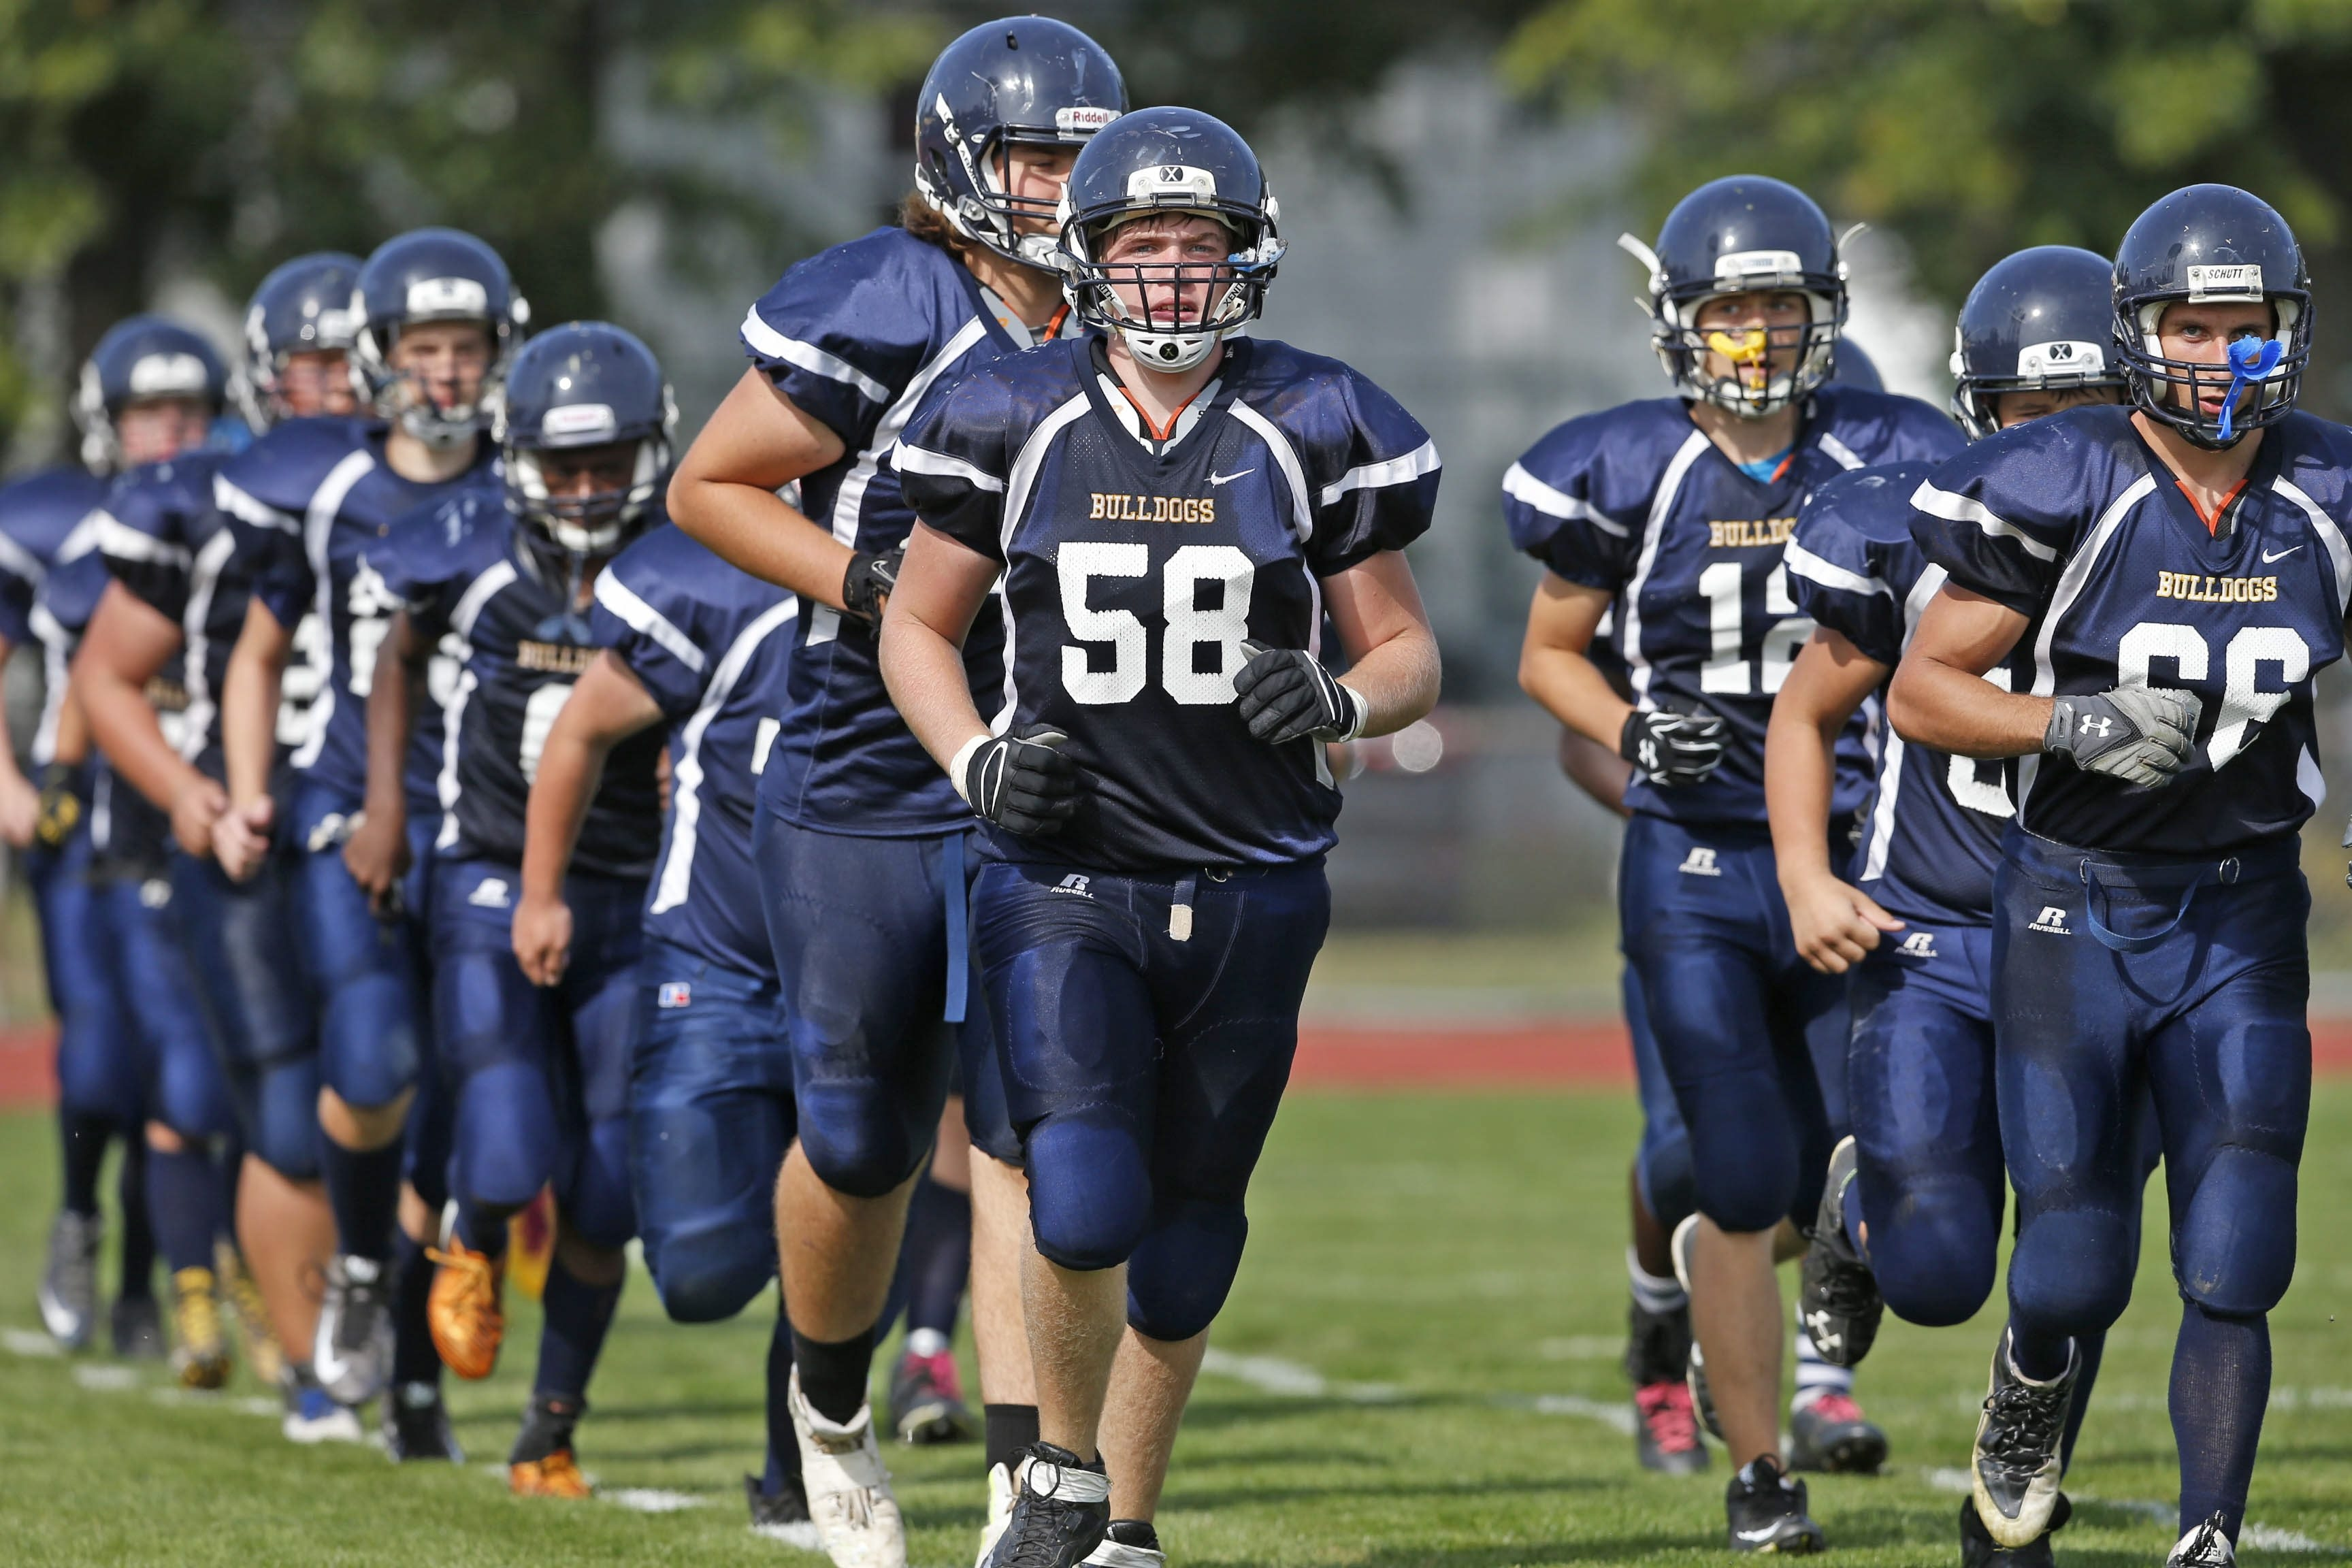 Kenmore Easts seniors Josh Moore (58) and Jacob Elgie (66) lead their team out on to the field to start the second half vs. Niagara Wheatfield at Kenmore East on Saturday, Sept. 26, 2015.  (Robert Kirkham/Buffalo News)